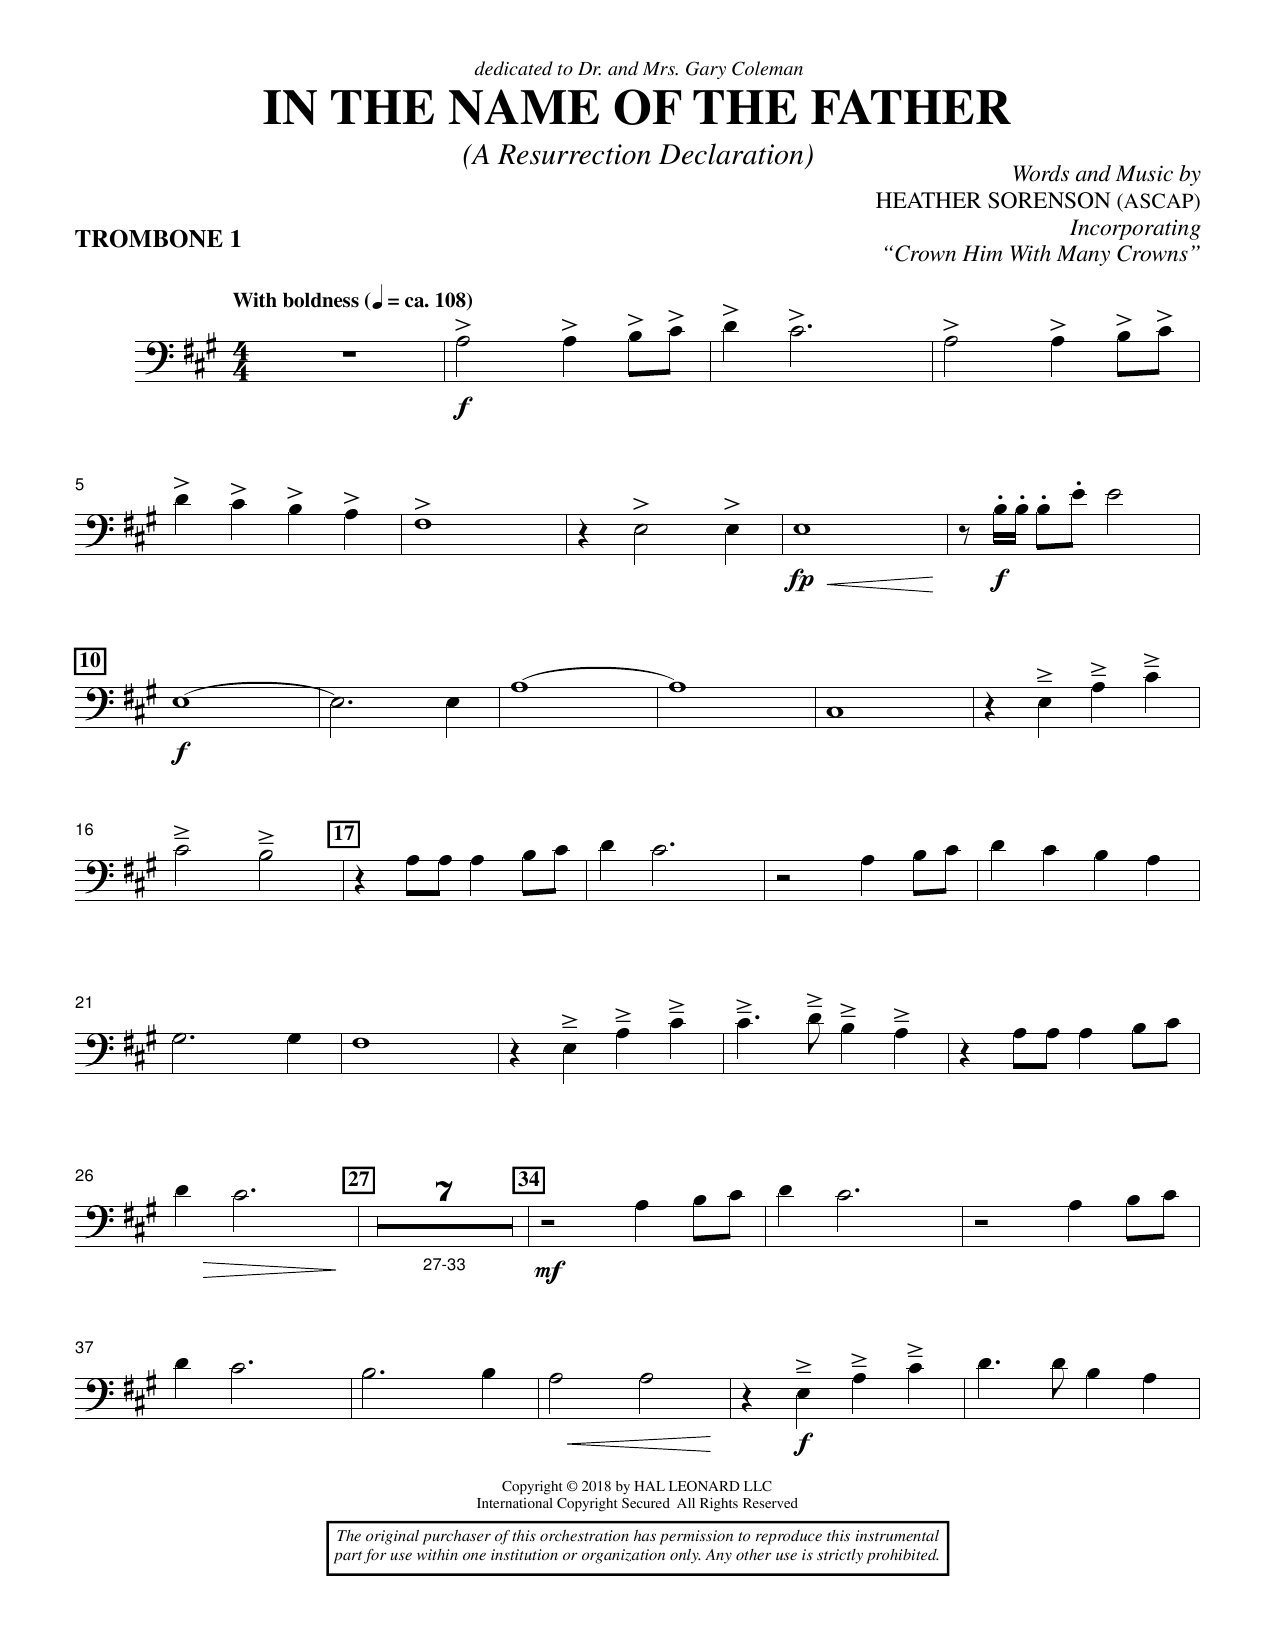 Heather Sorenson In the Name of the Father (A Resurrection Declaration) - Trombone 1 sheet music notes and chords